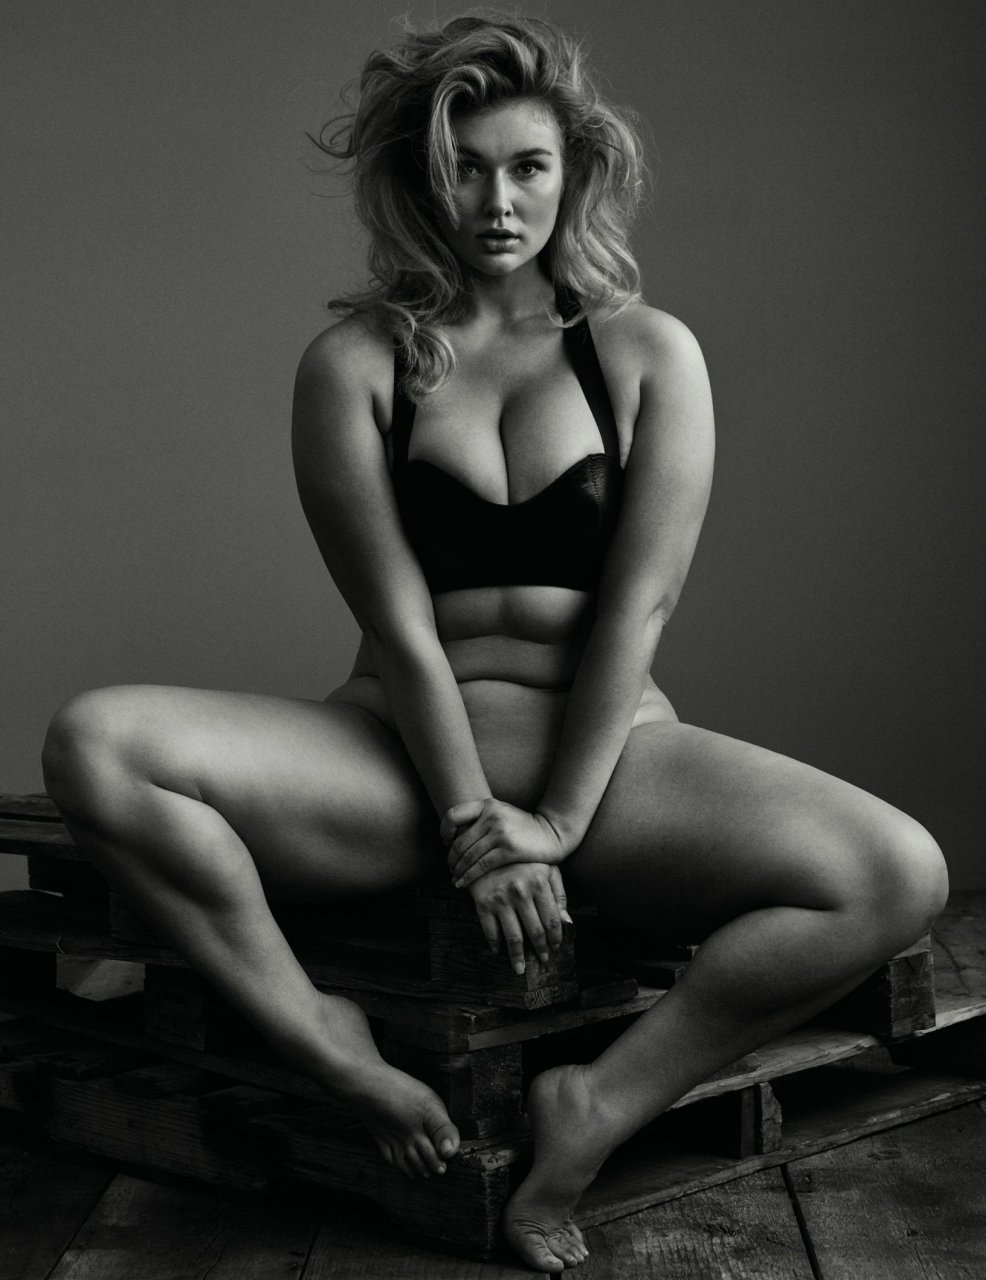 hunter mcgrady hot